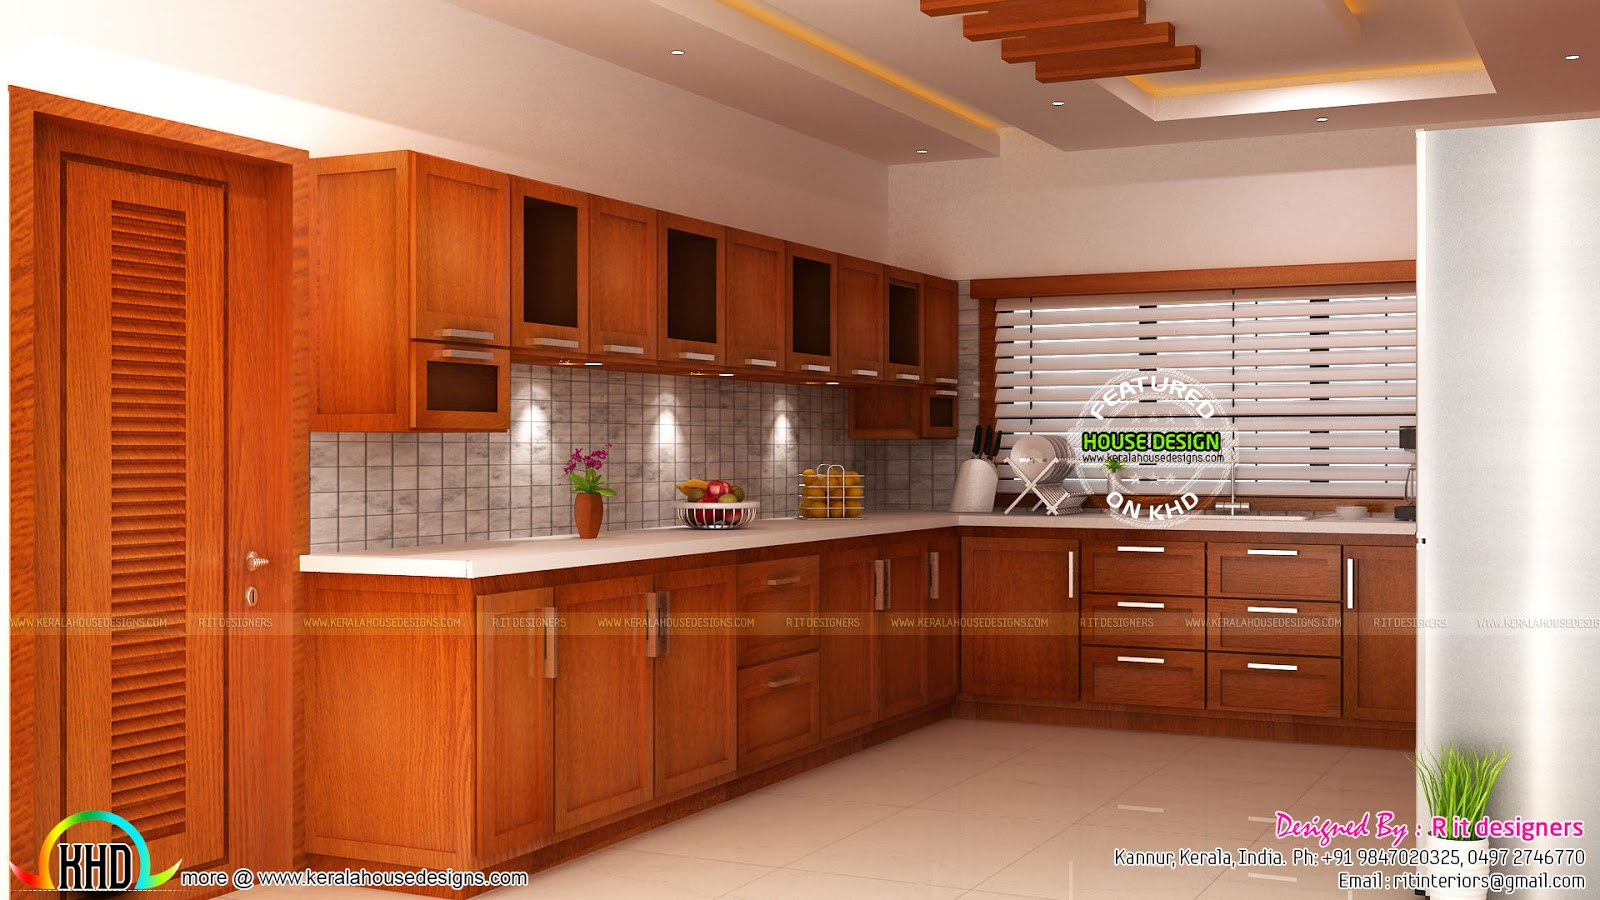 modular kitchen living and bedroom interior kerala home design and floor plans. Black Bedroom Furniture Sets. Home Design Ideas